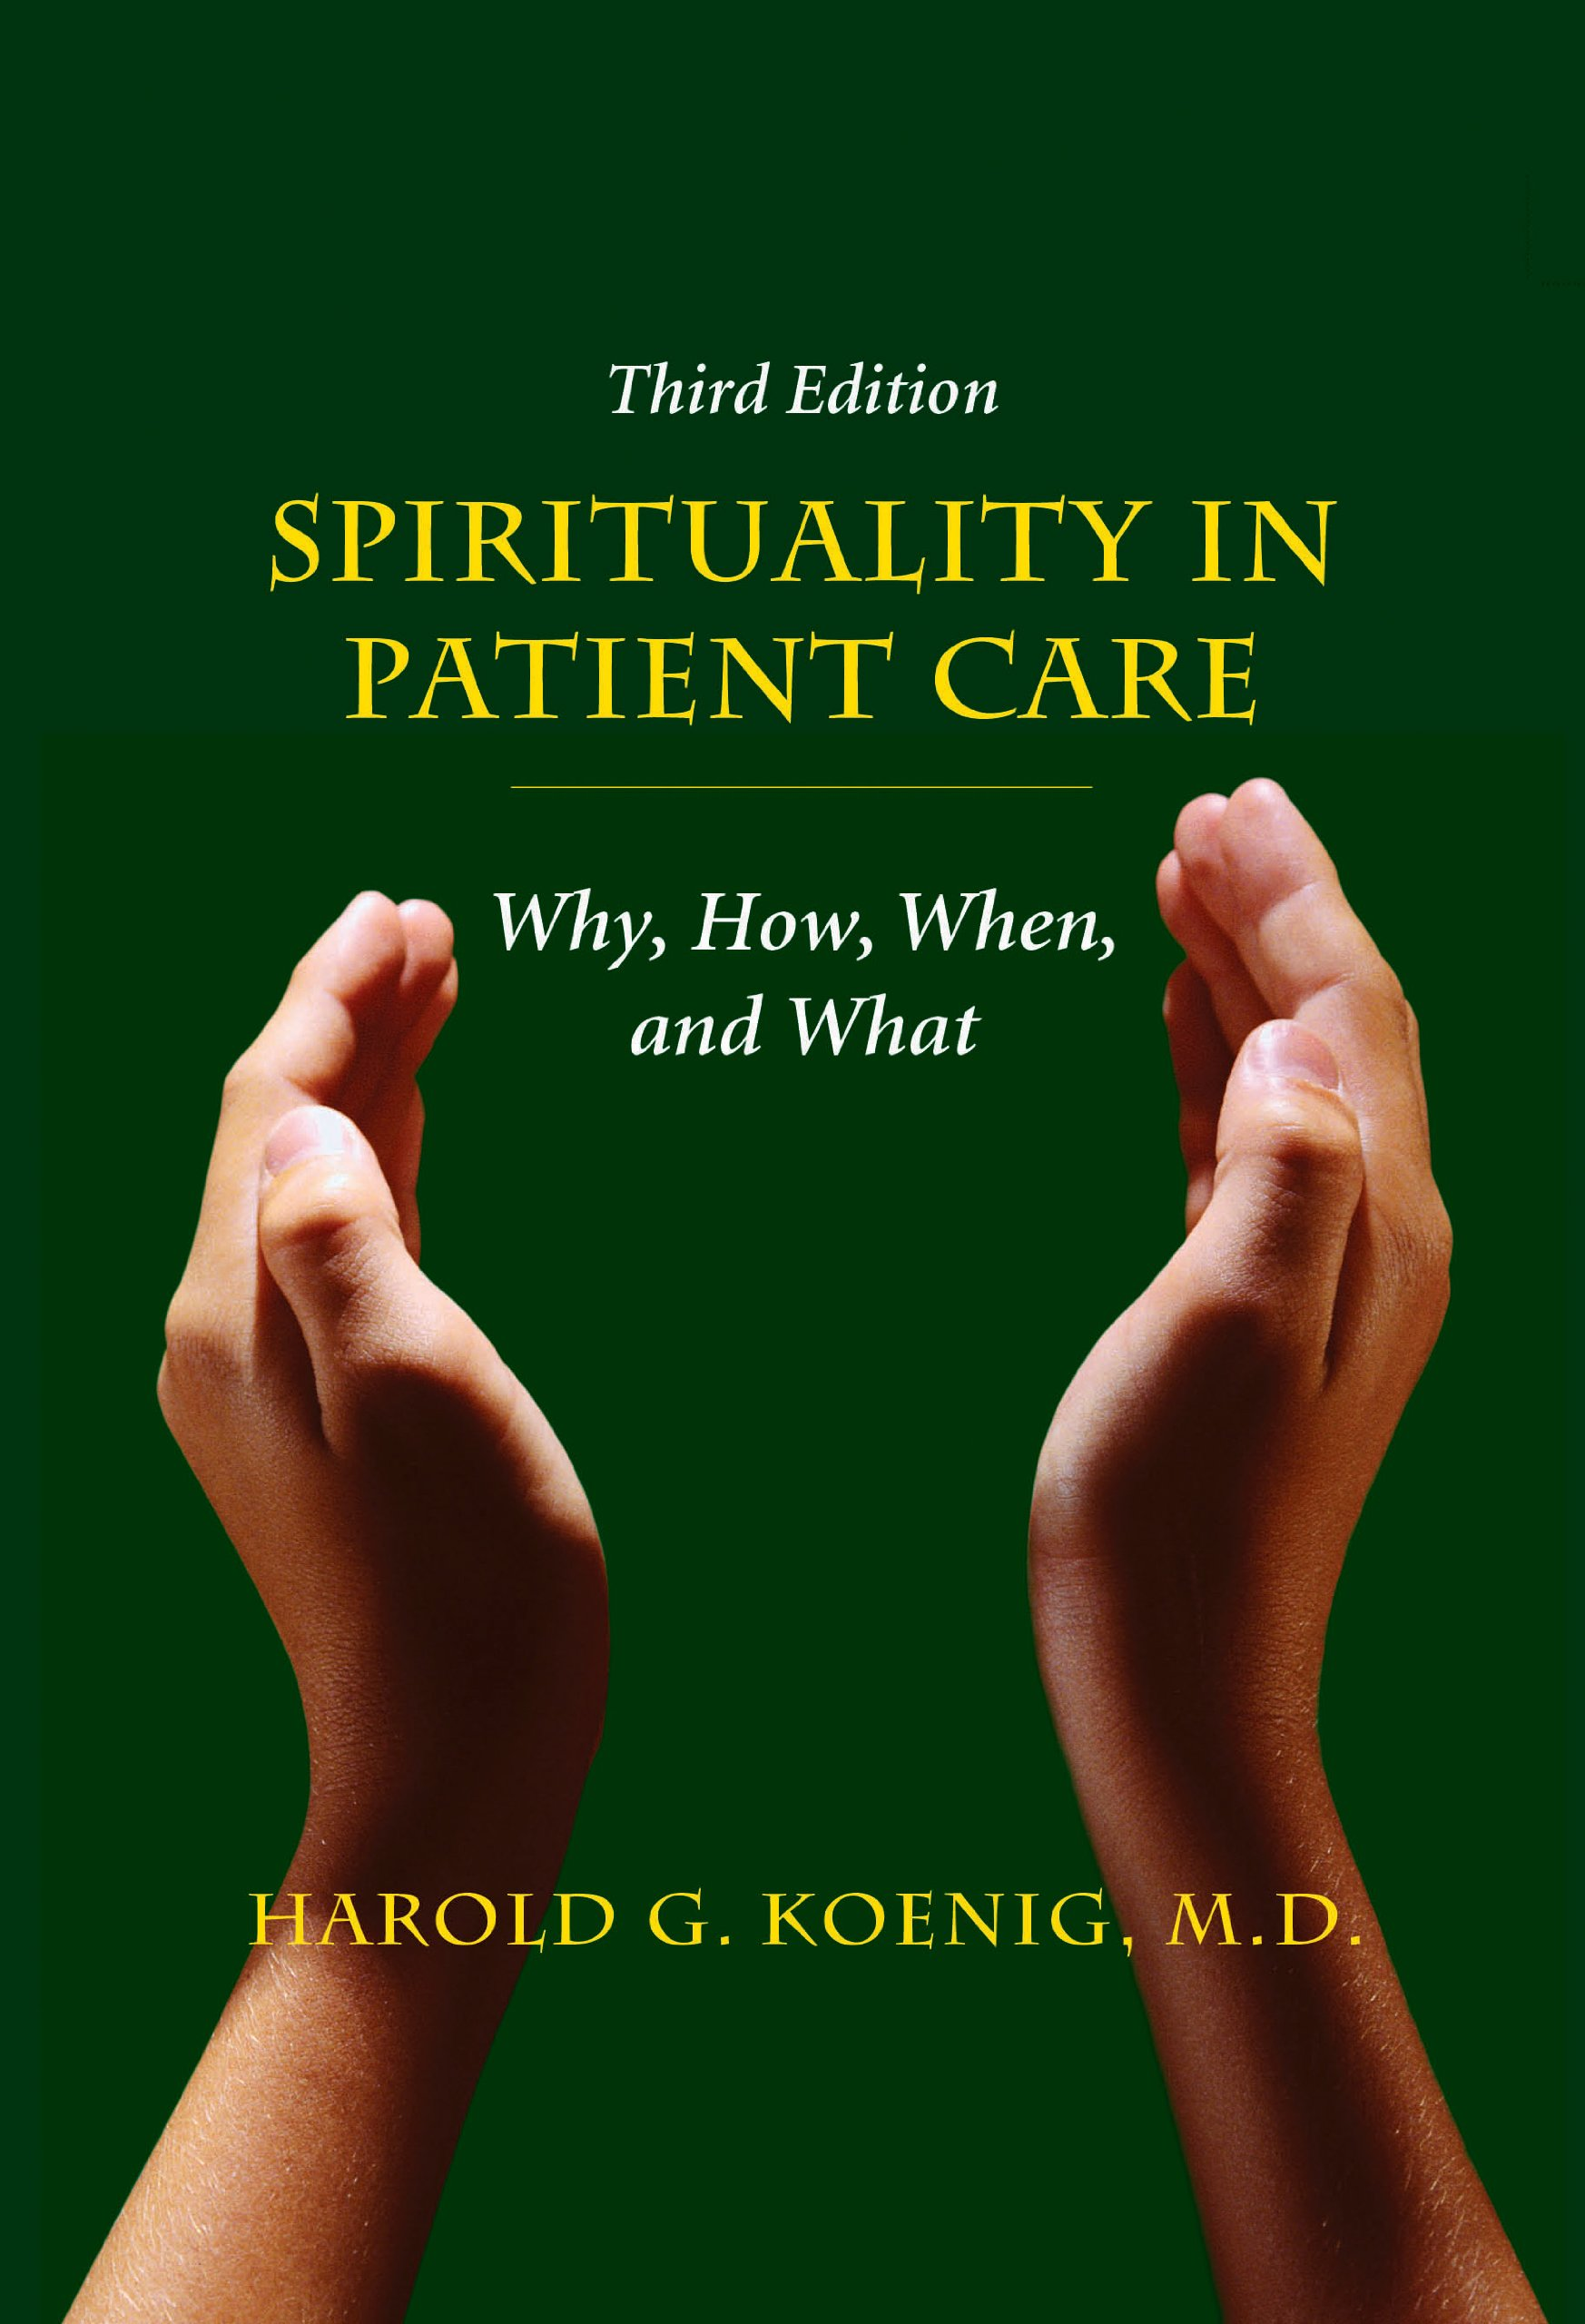 Spirituality in Patient Care: Why, How, When, and What